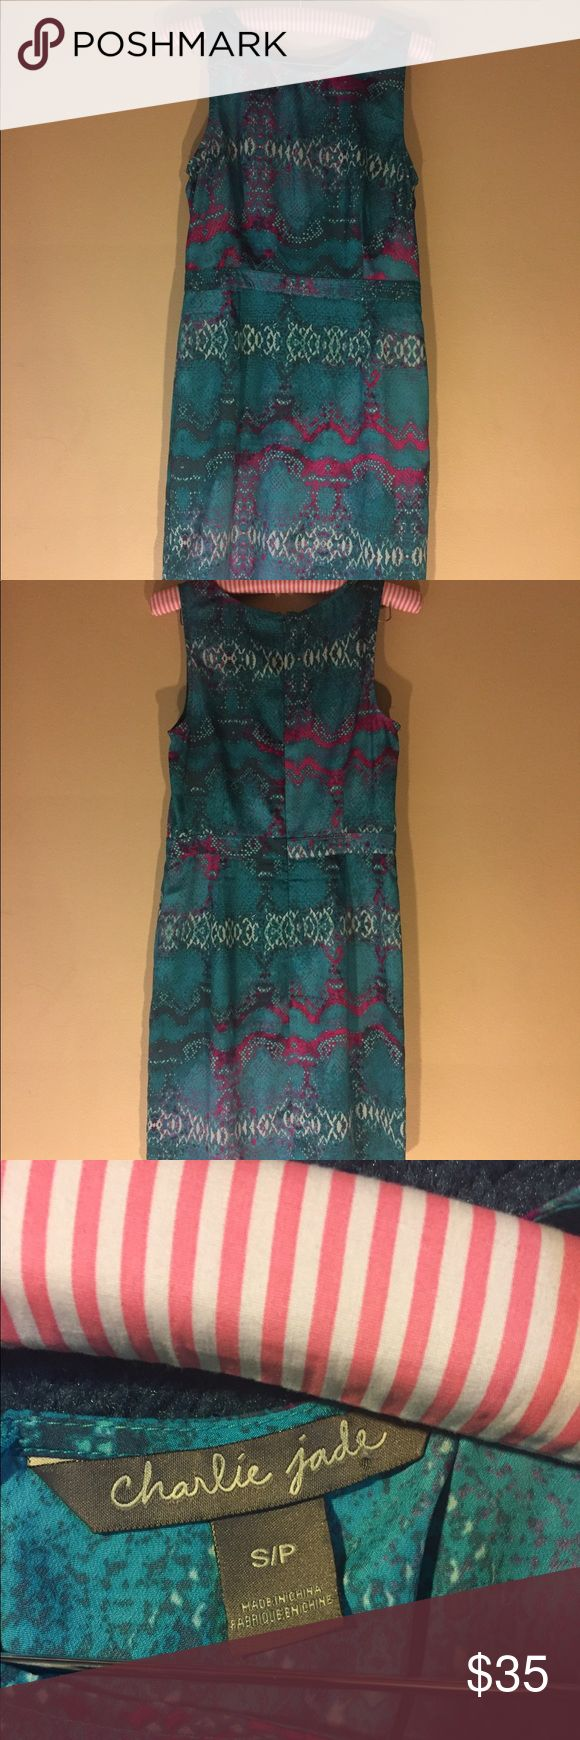 Charlie Jade Teal Blue & Pink Print Dress Charlie Jade   Teal Blue & Pink Print Dress  Size: Small Zippers in back.  Lined skirt.  100% polyester.  Hand Wash cold.  No defects or stains.  Excellent pre-owned Condition Charlie Jade Dresses Midi